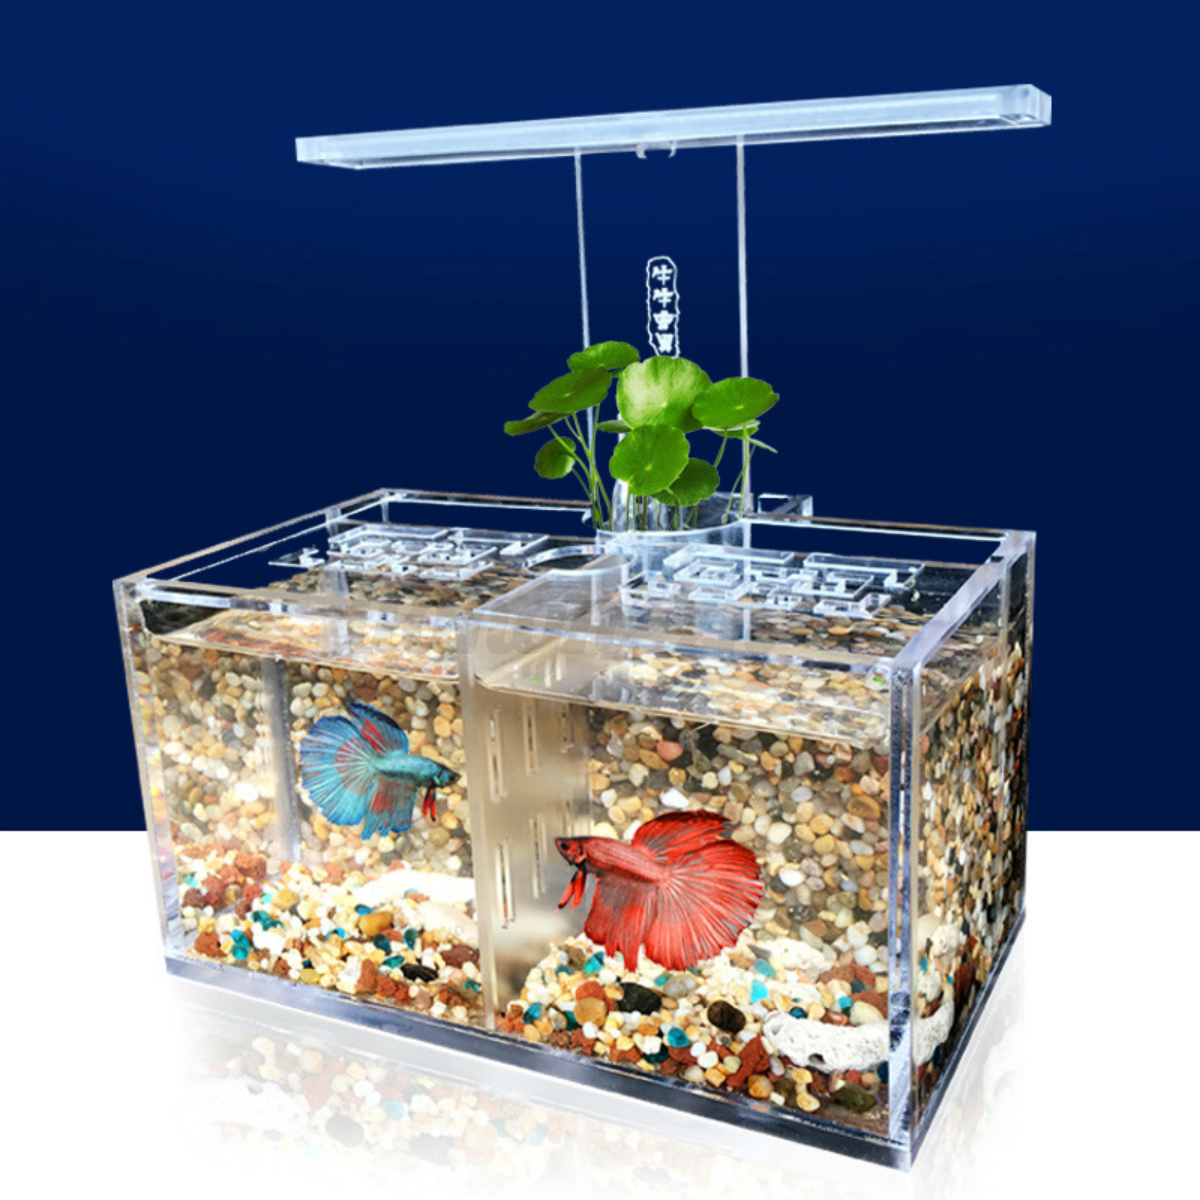 acrylic clear betta fish tank mini desktop aquarium led